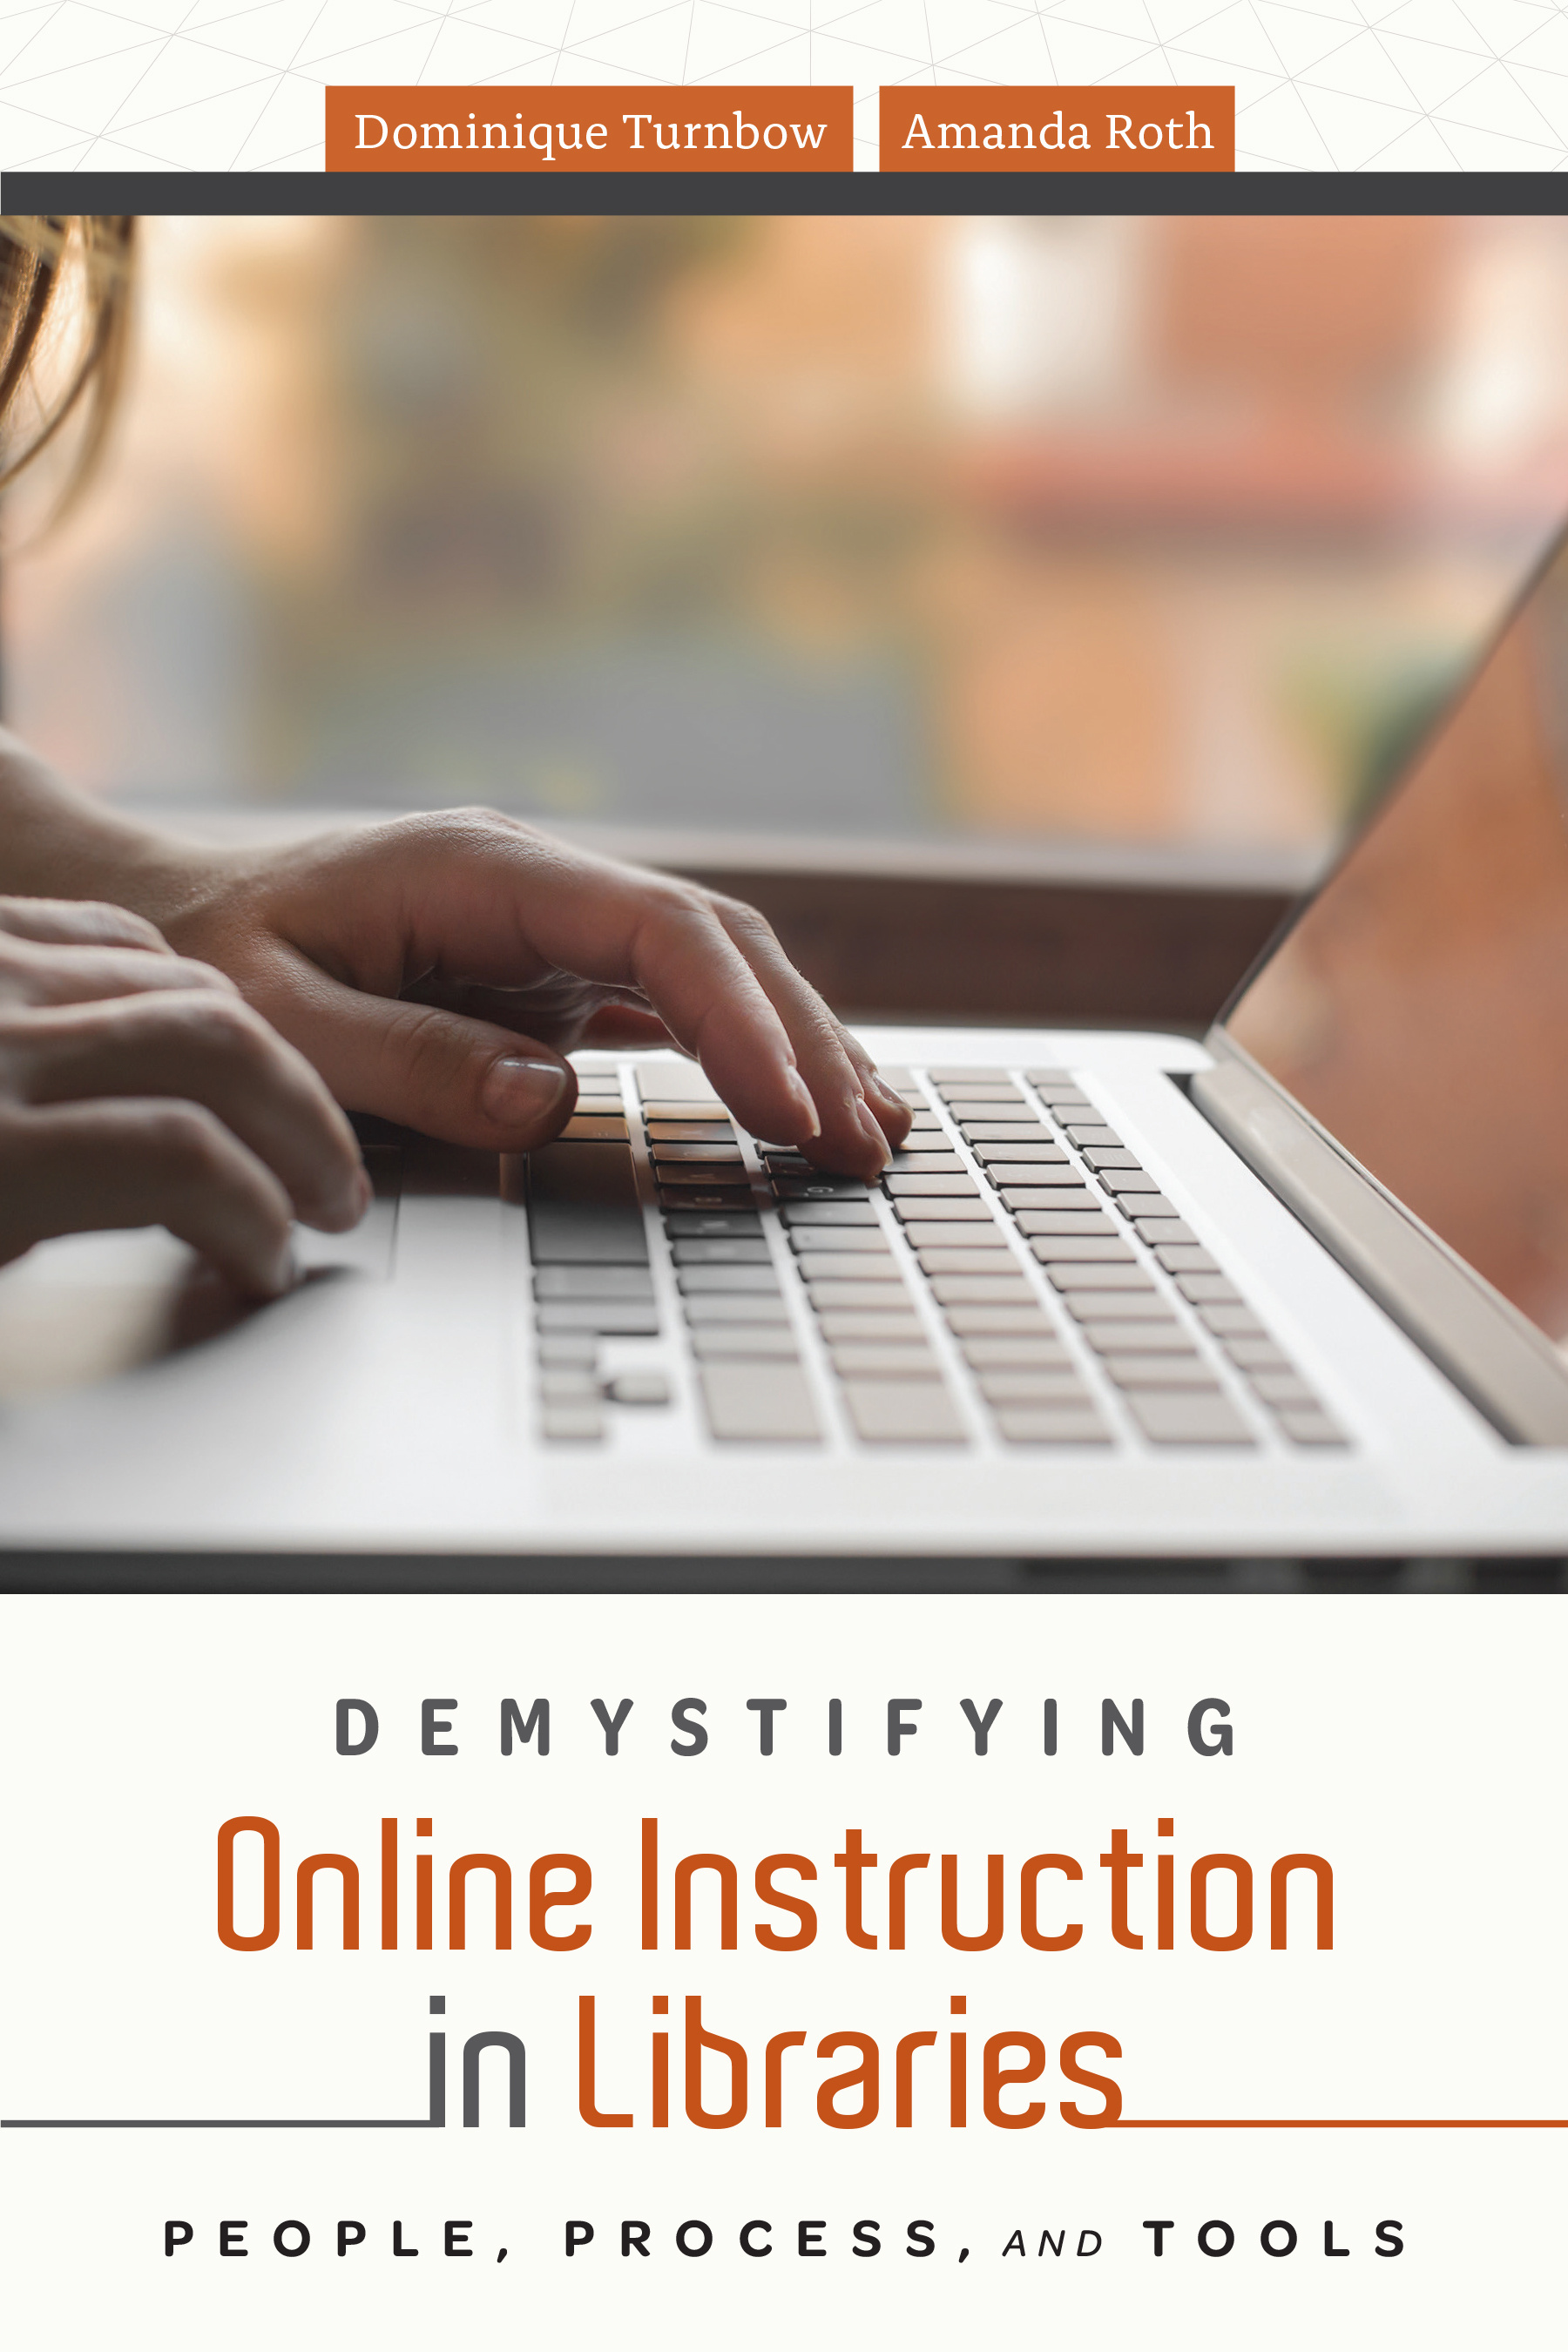 Demystifying Online Instruction in Libraries